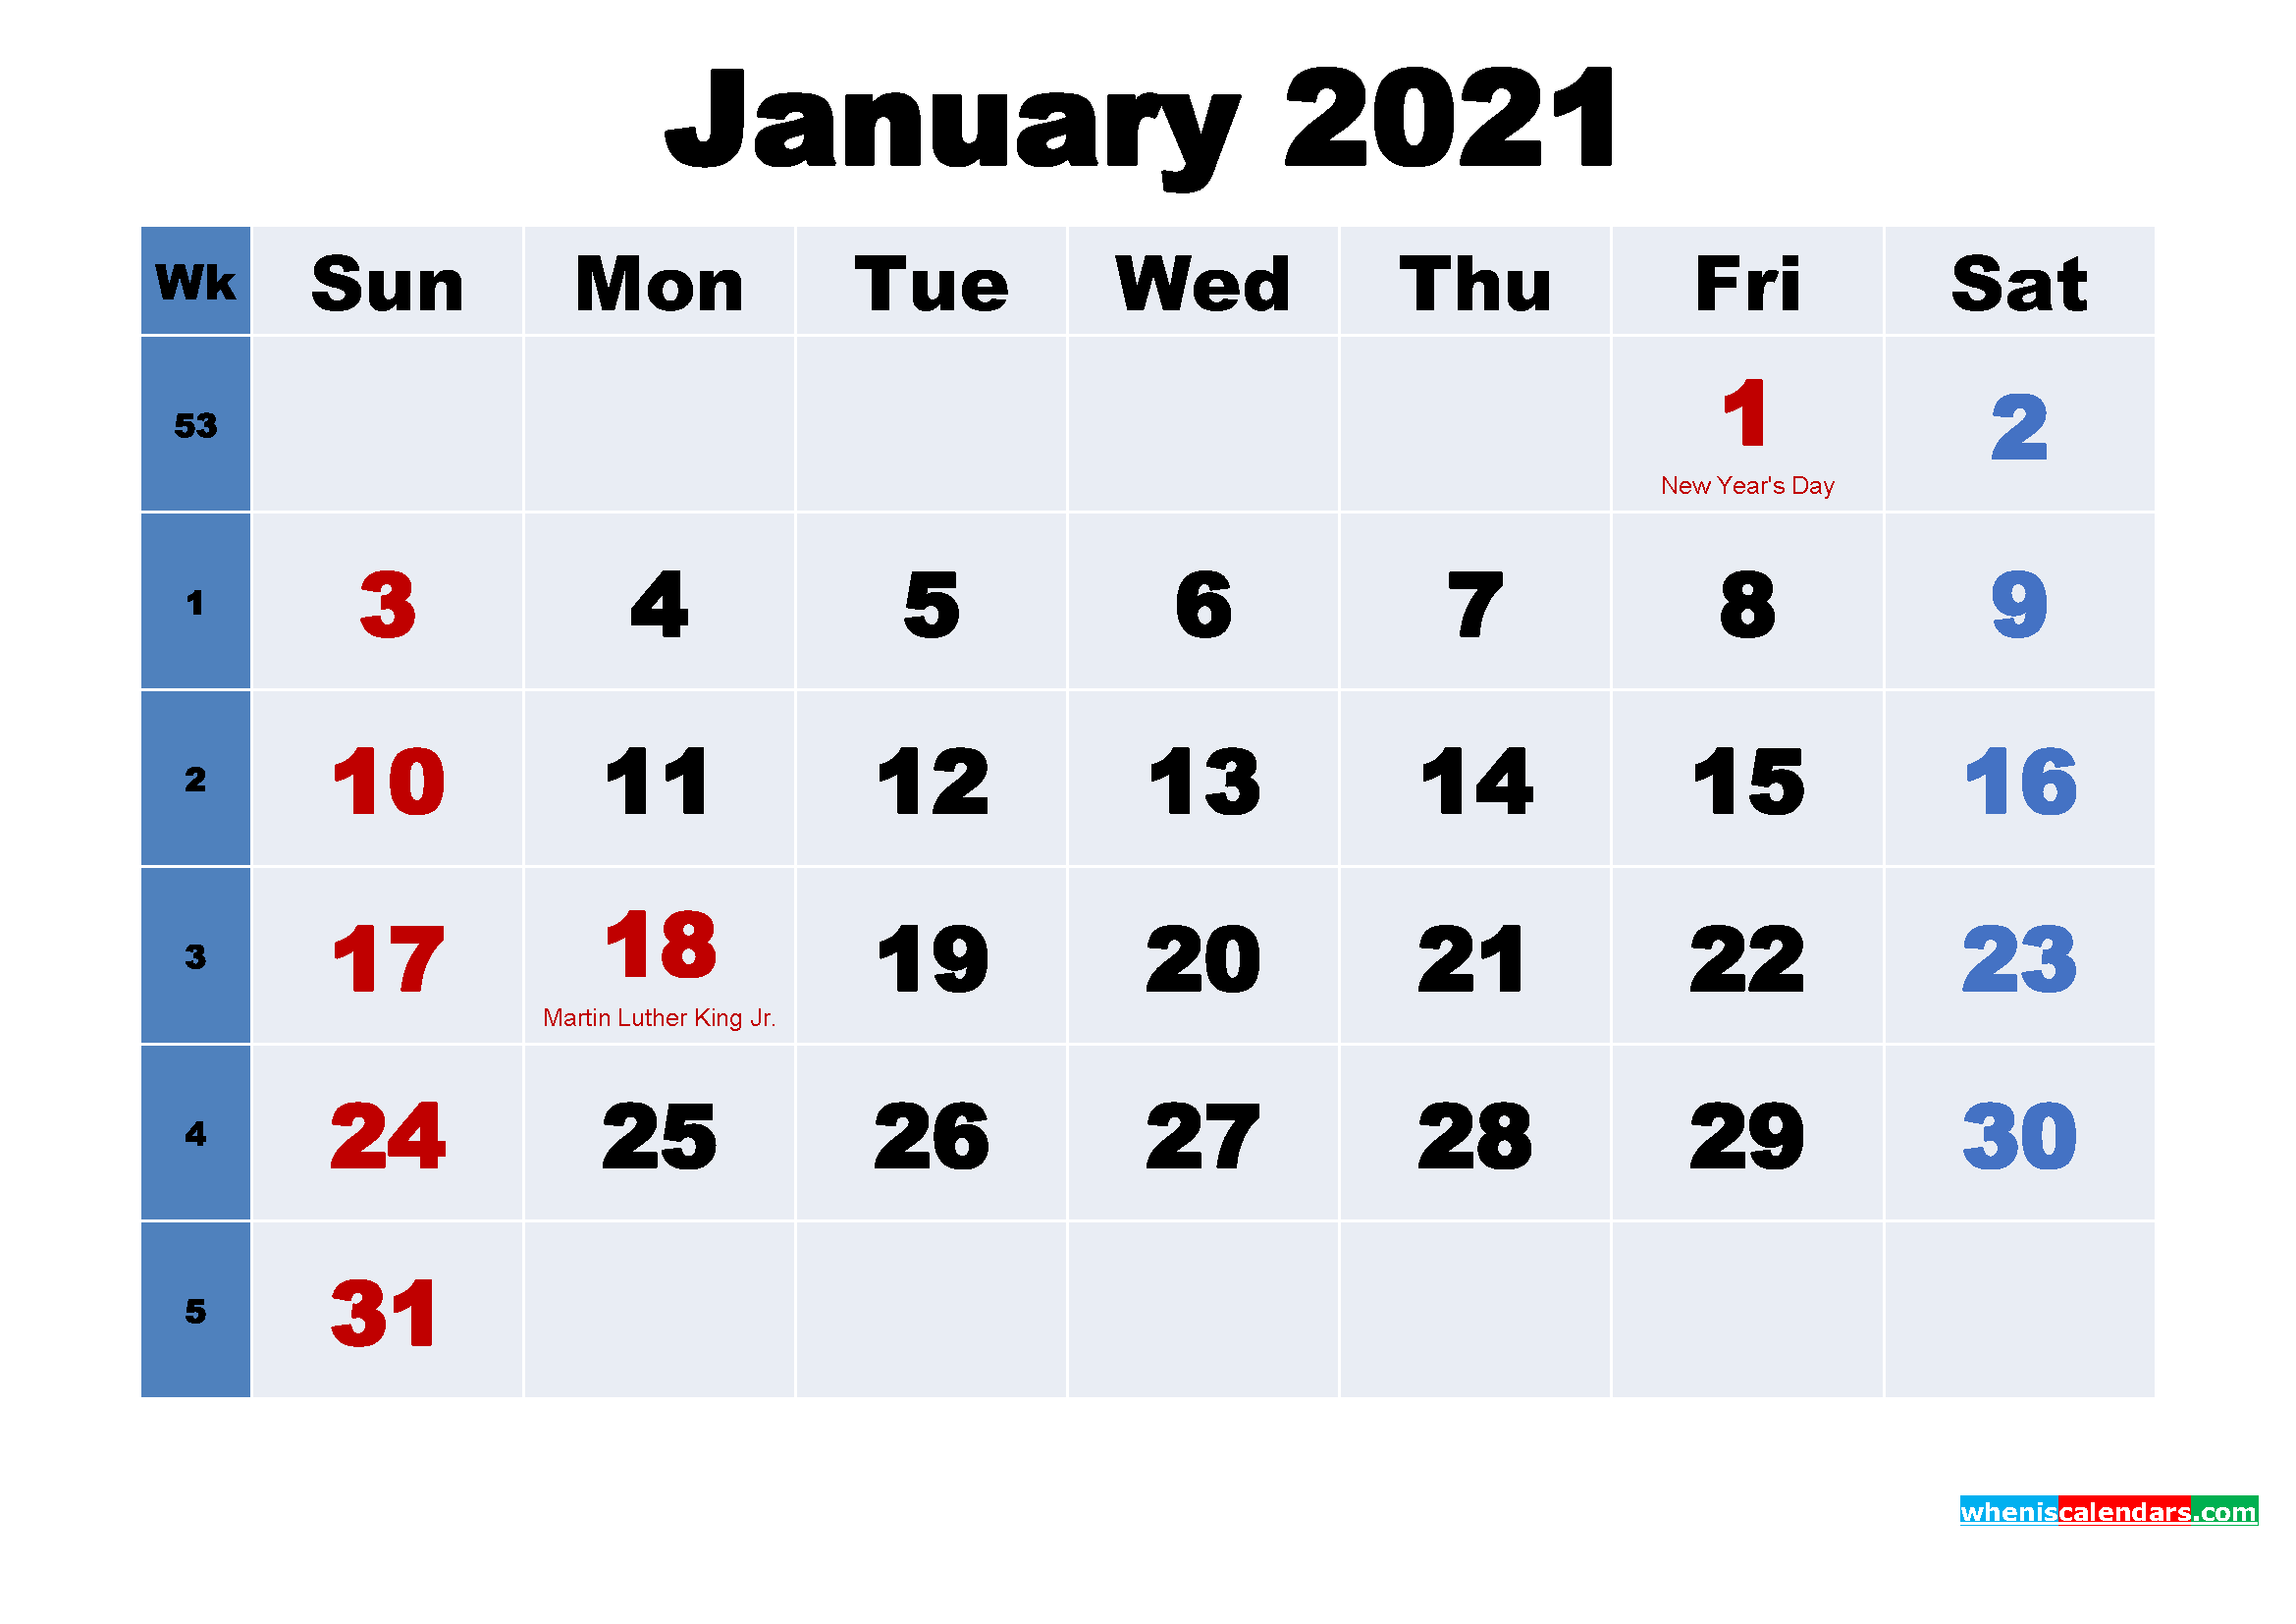 January 2021 Desktop Calendar with Holidays